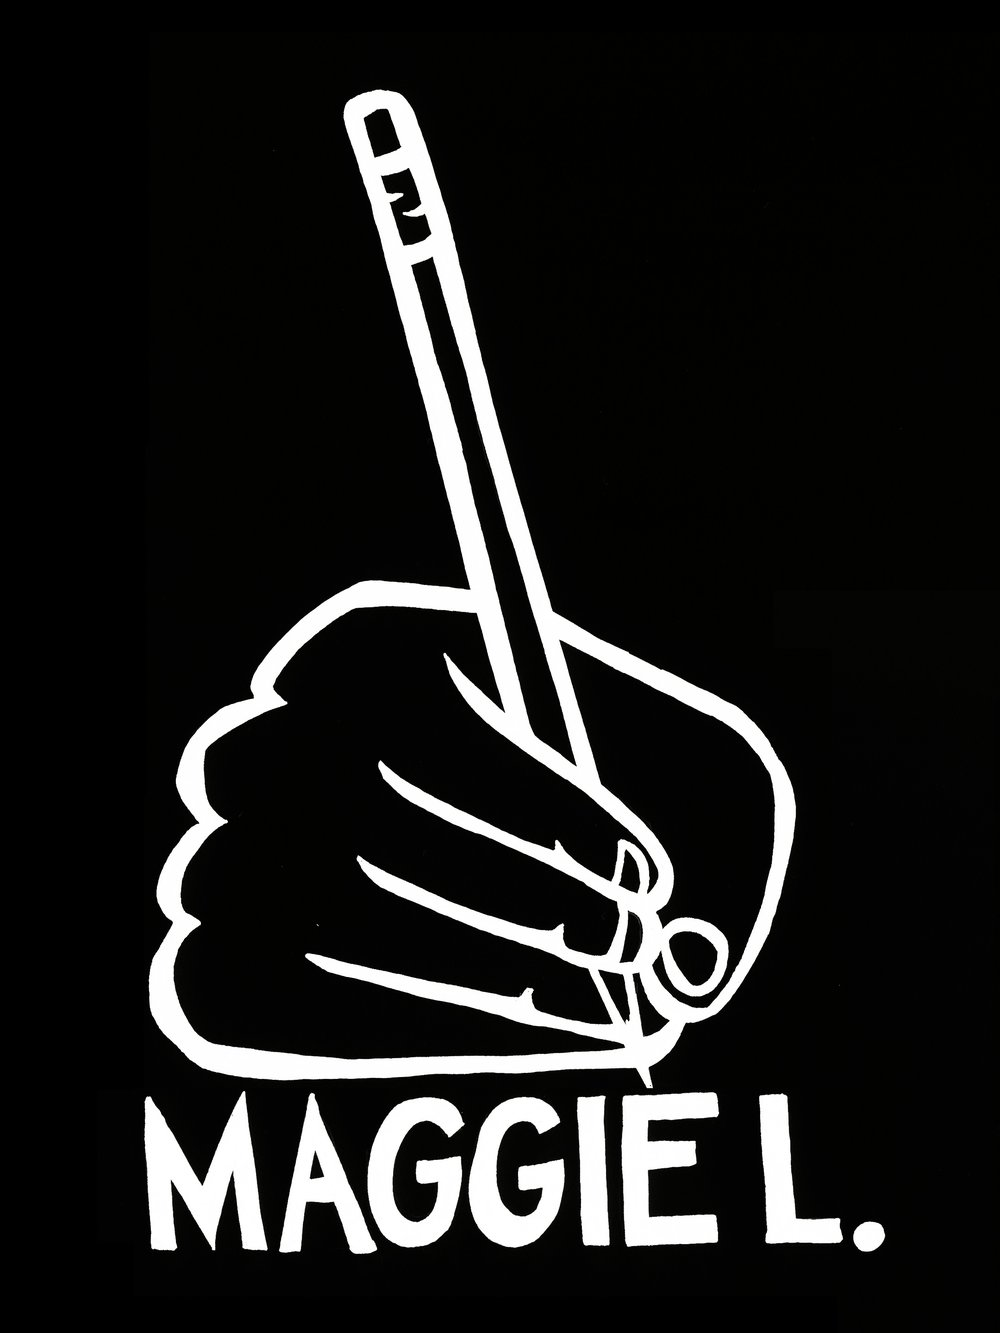 FV Maggie L. Business Card Hand.jpg